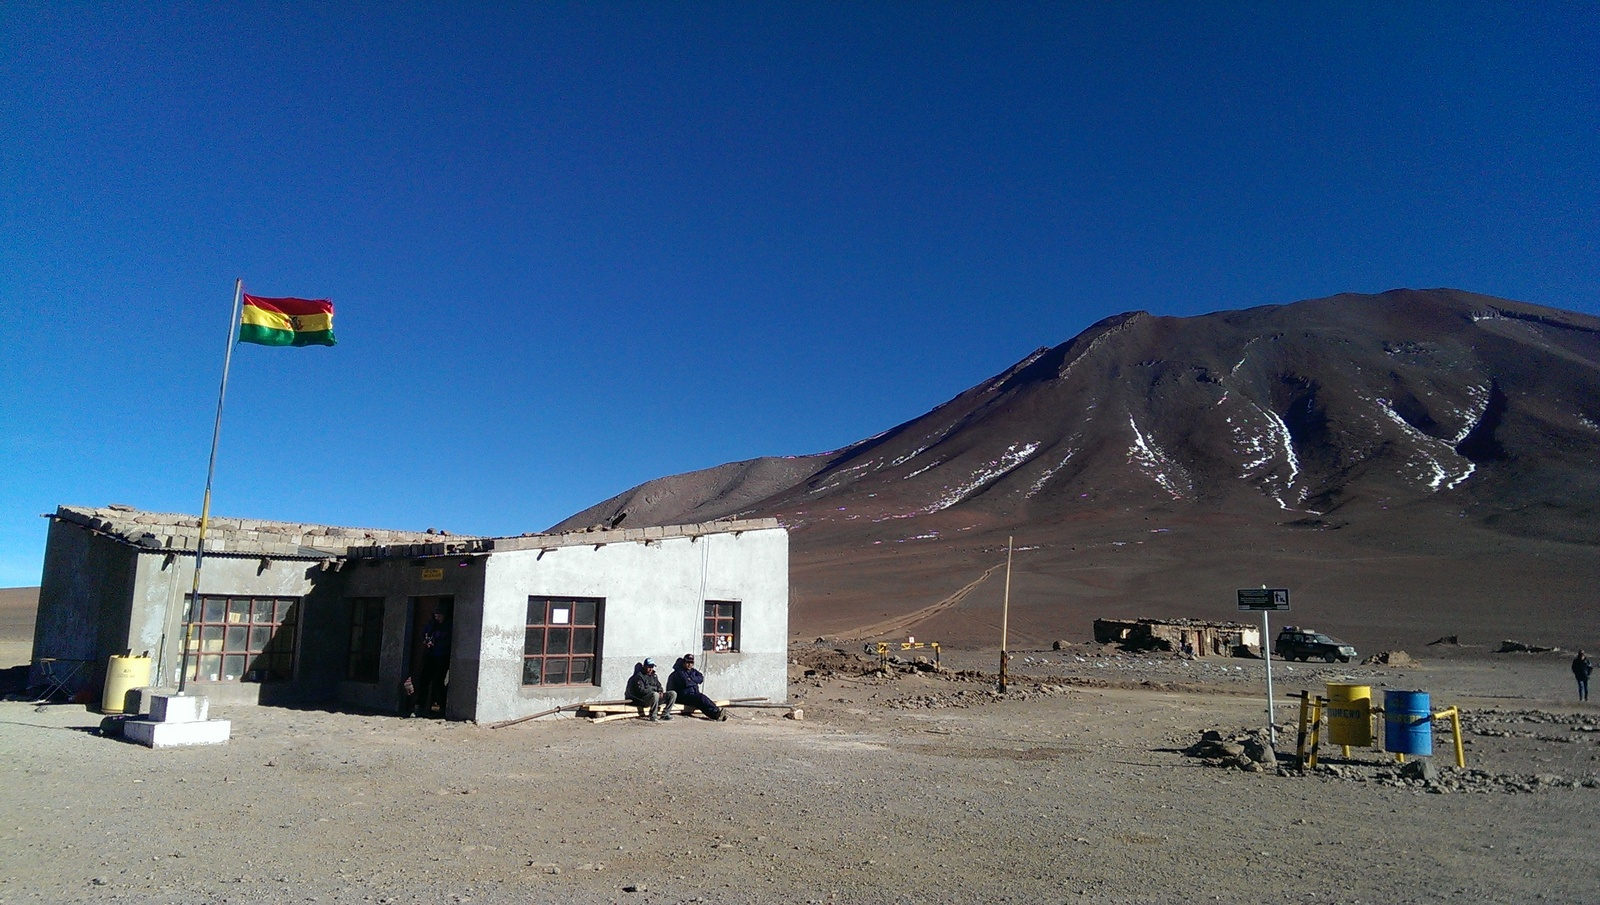 Bolivian Border Outpost